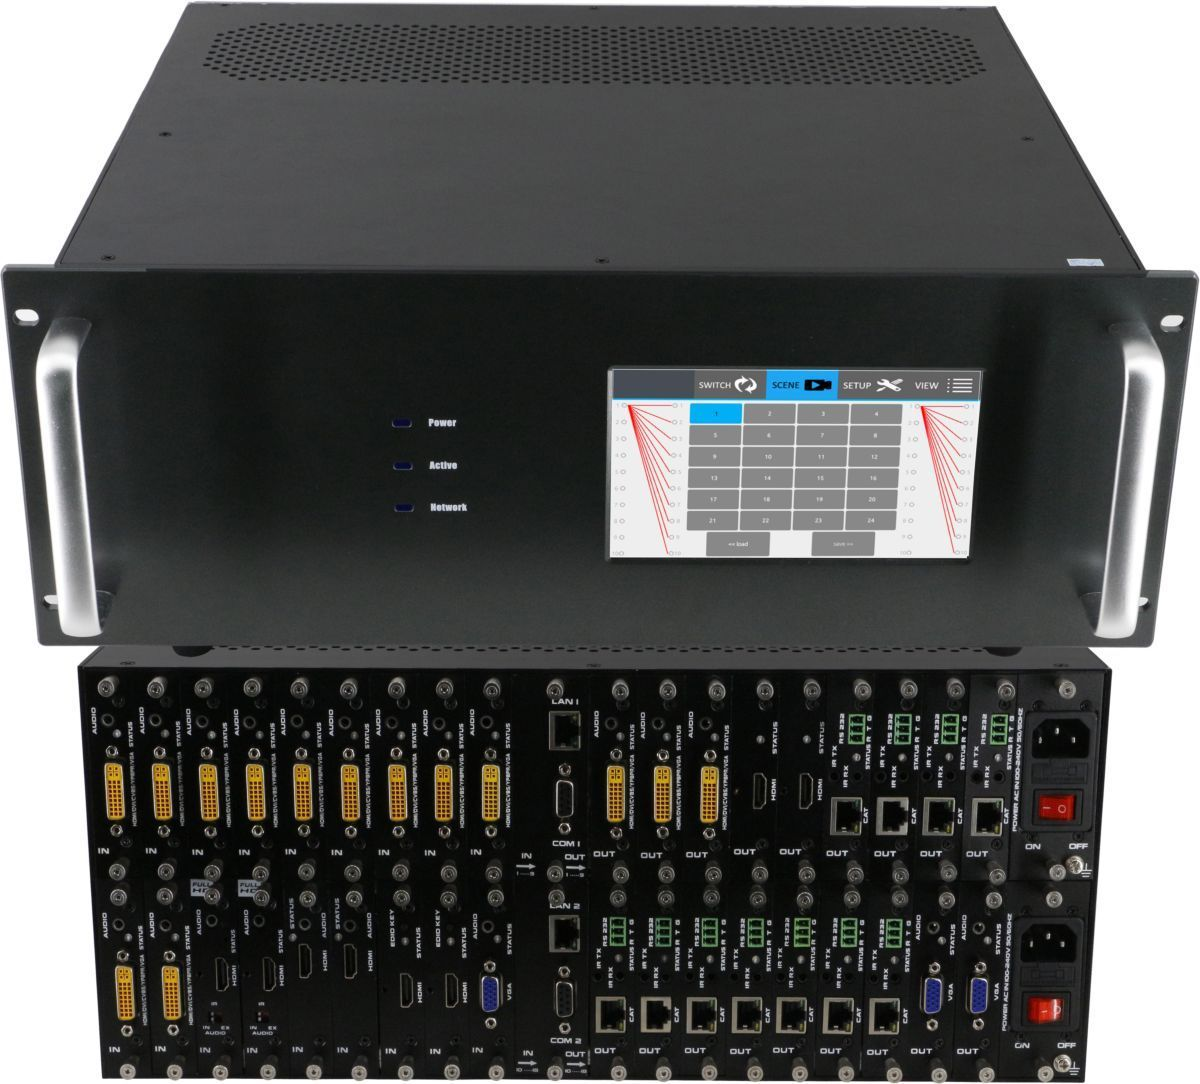 4K 16x16 HDMI Matrix Switcher with Color Touchscreen